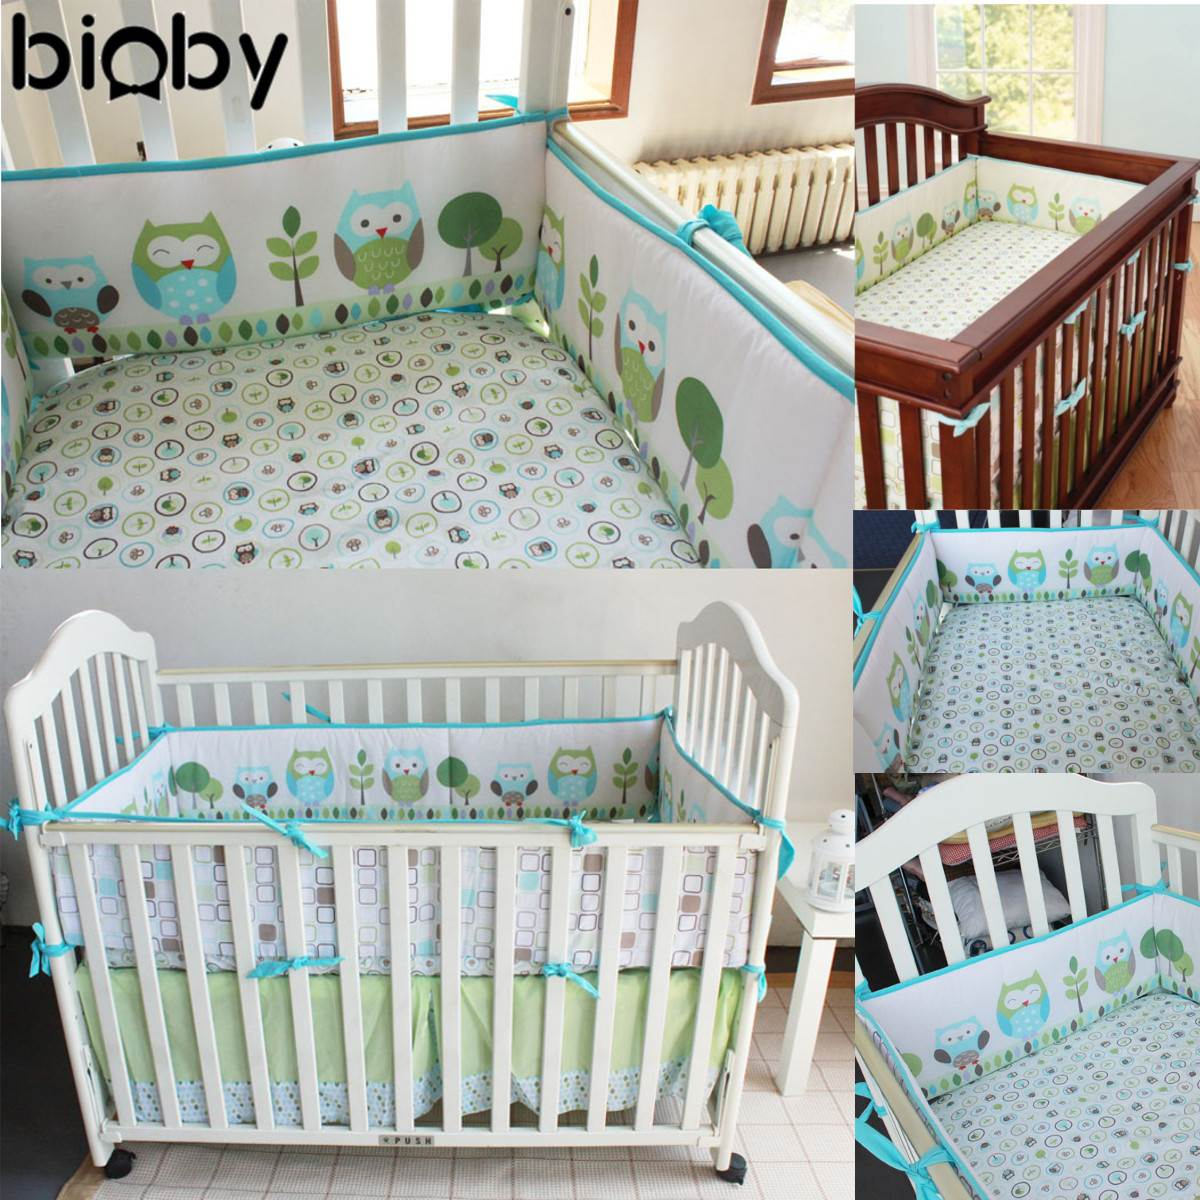 4Pcs Cute Owl Baby Infant Cot Crib Bumper Safety Protector Toddler Nursery Bedding Set Cushion Pad Baby Care Supplies Colorful<br>